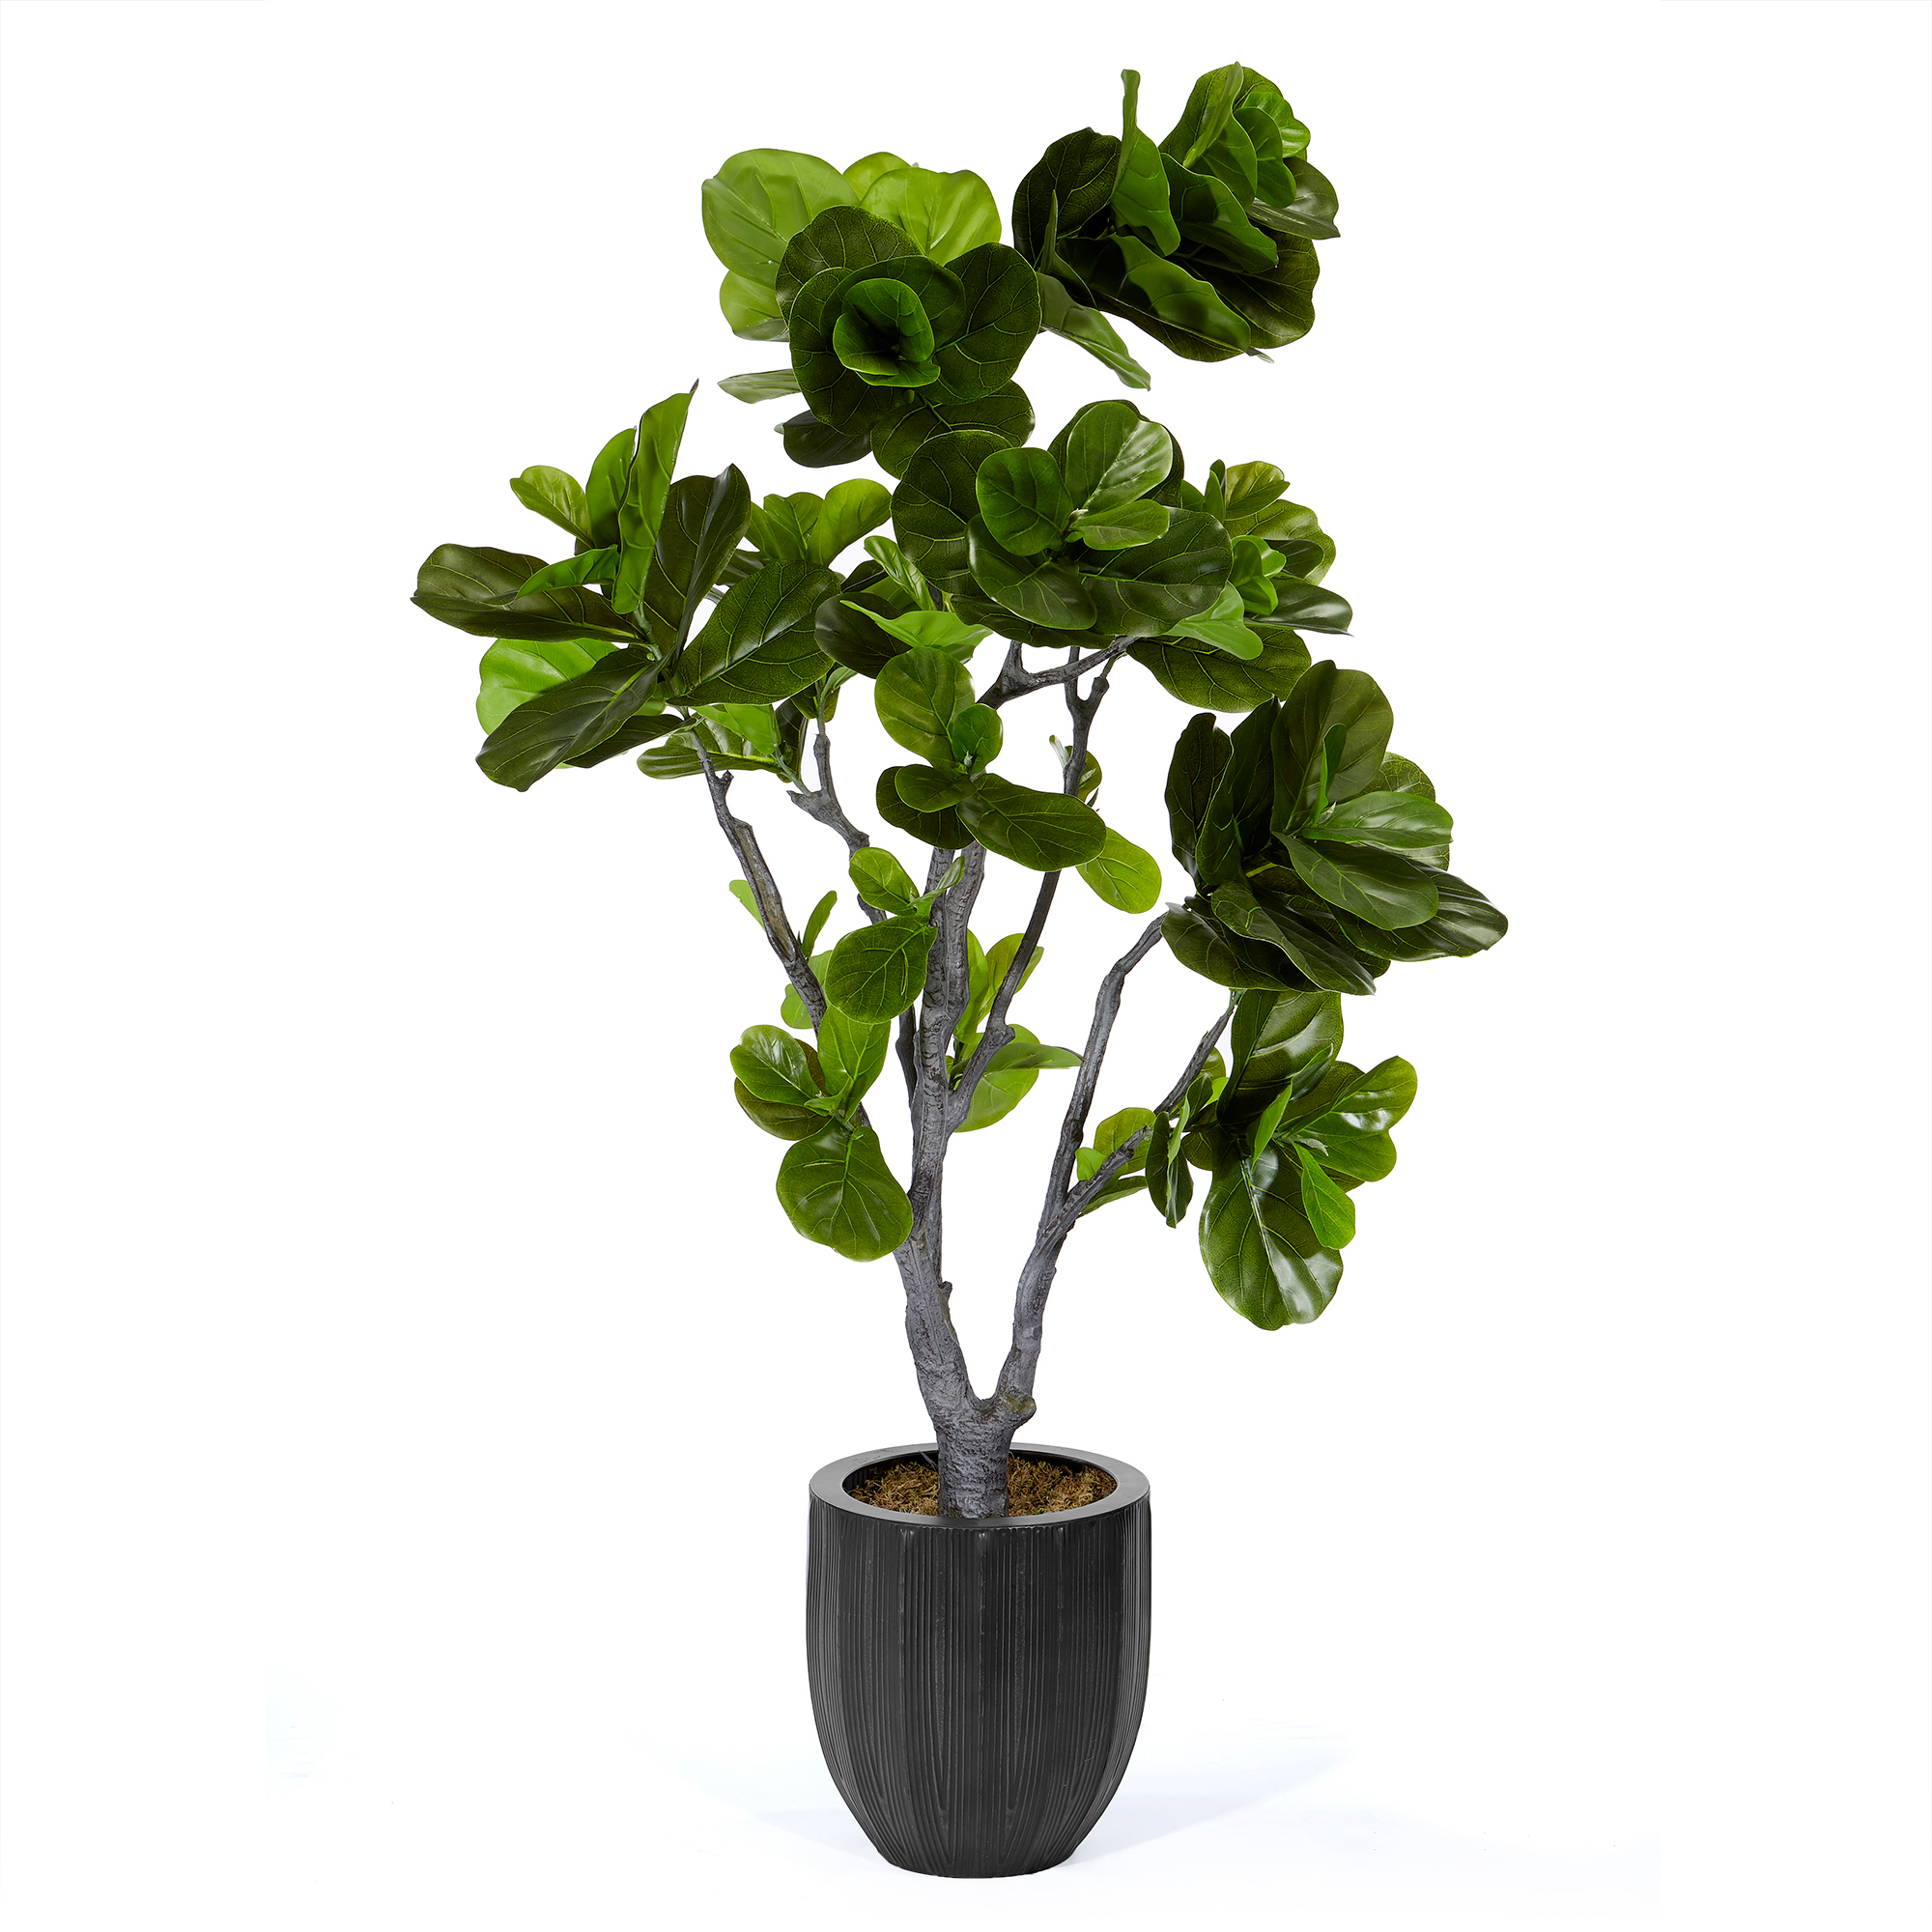 Fiddle Leaf Fig Tree Fiddle Leaf Fig Tree Gump 39s